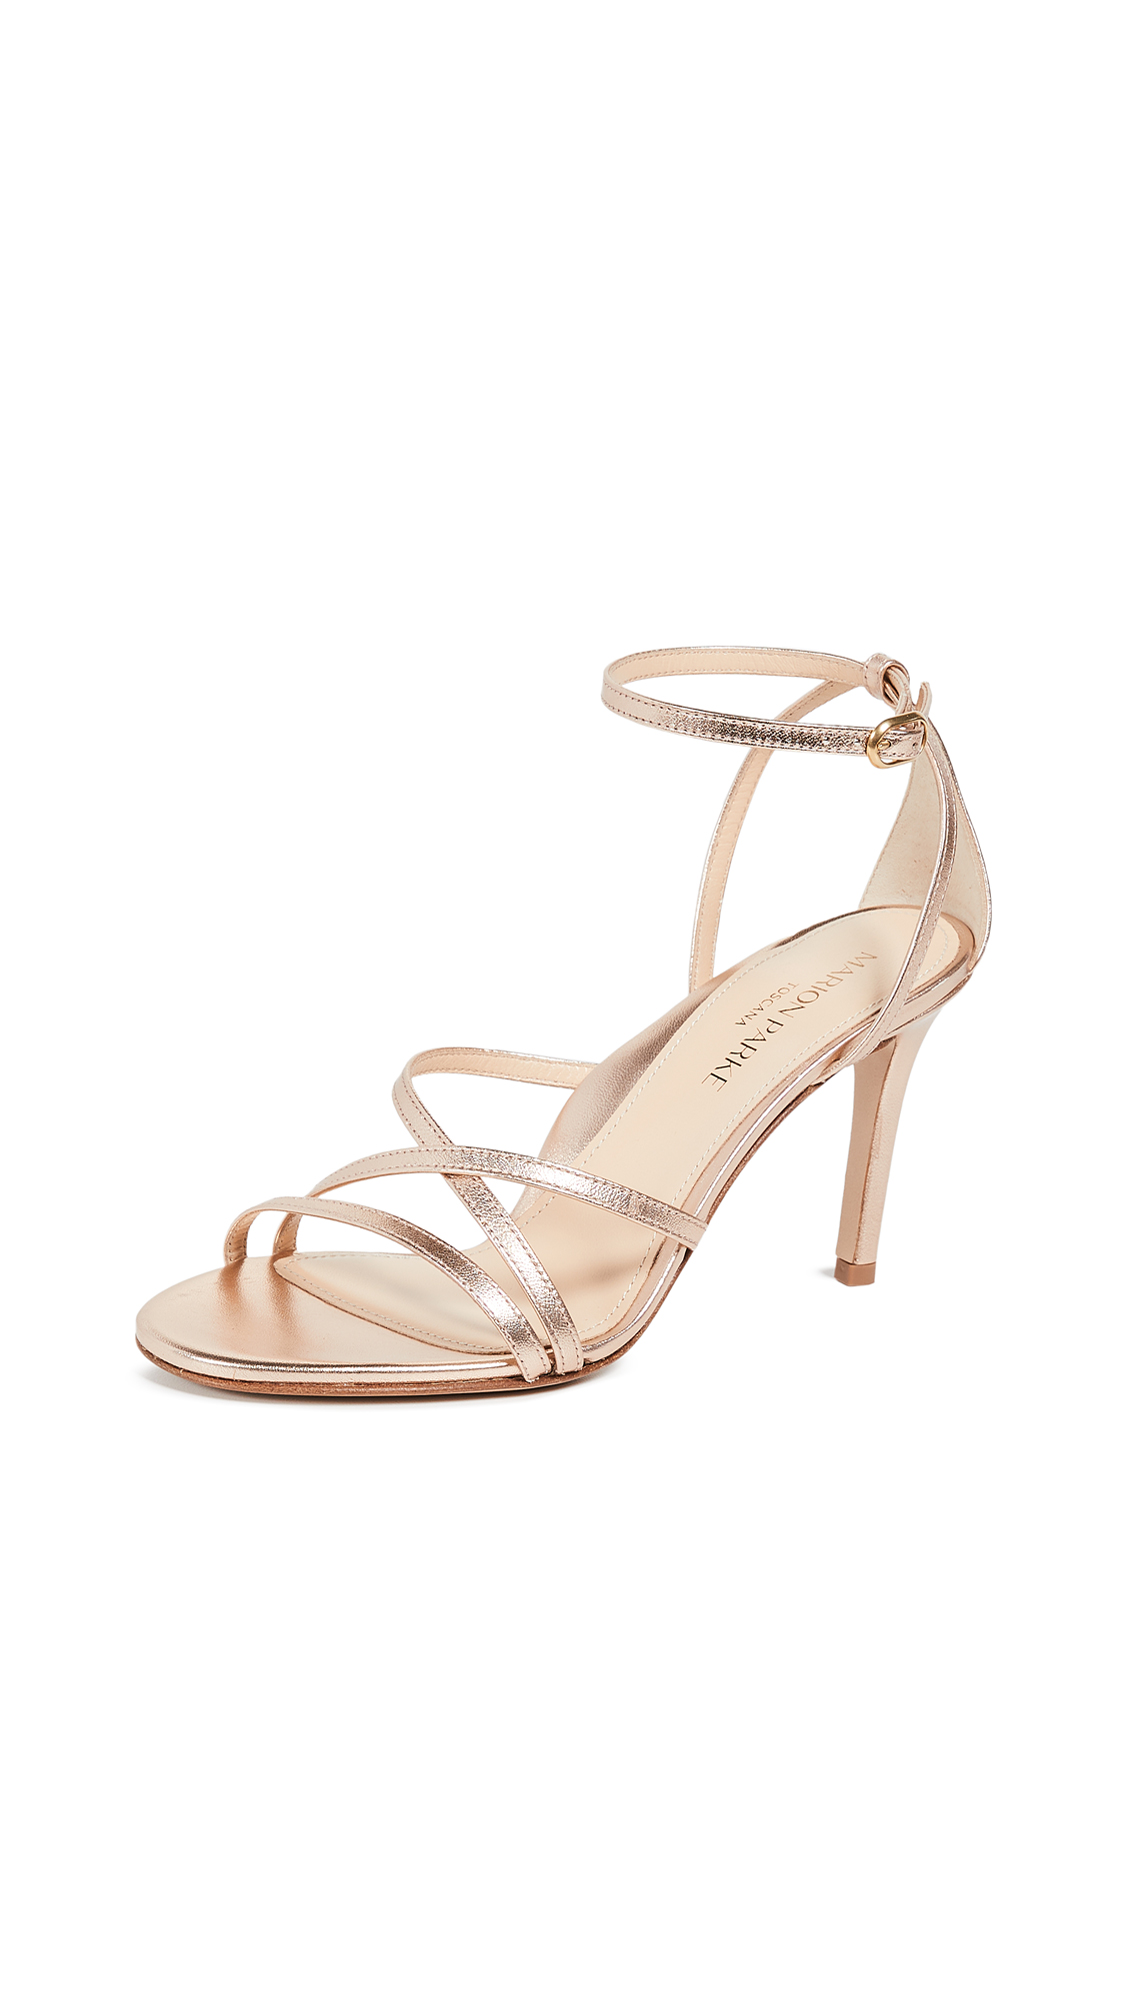 Marion Parke Lillian Strappy Sandals - Rose Gold